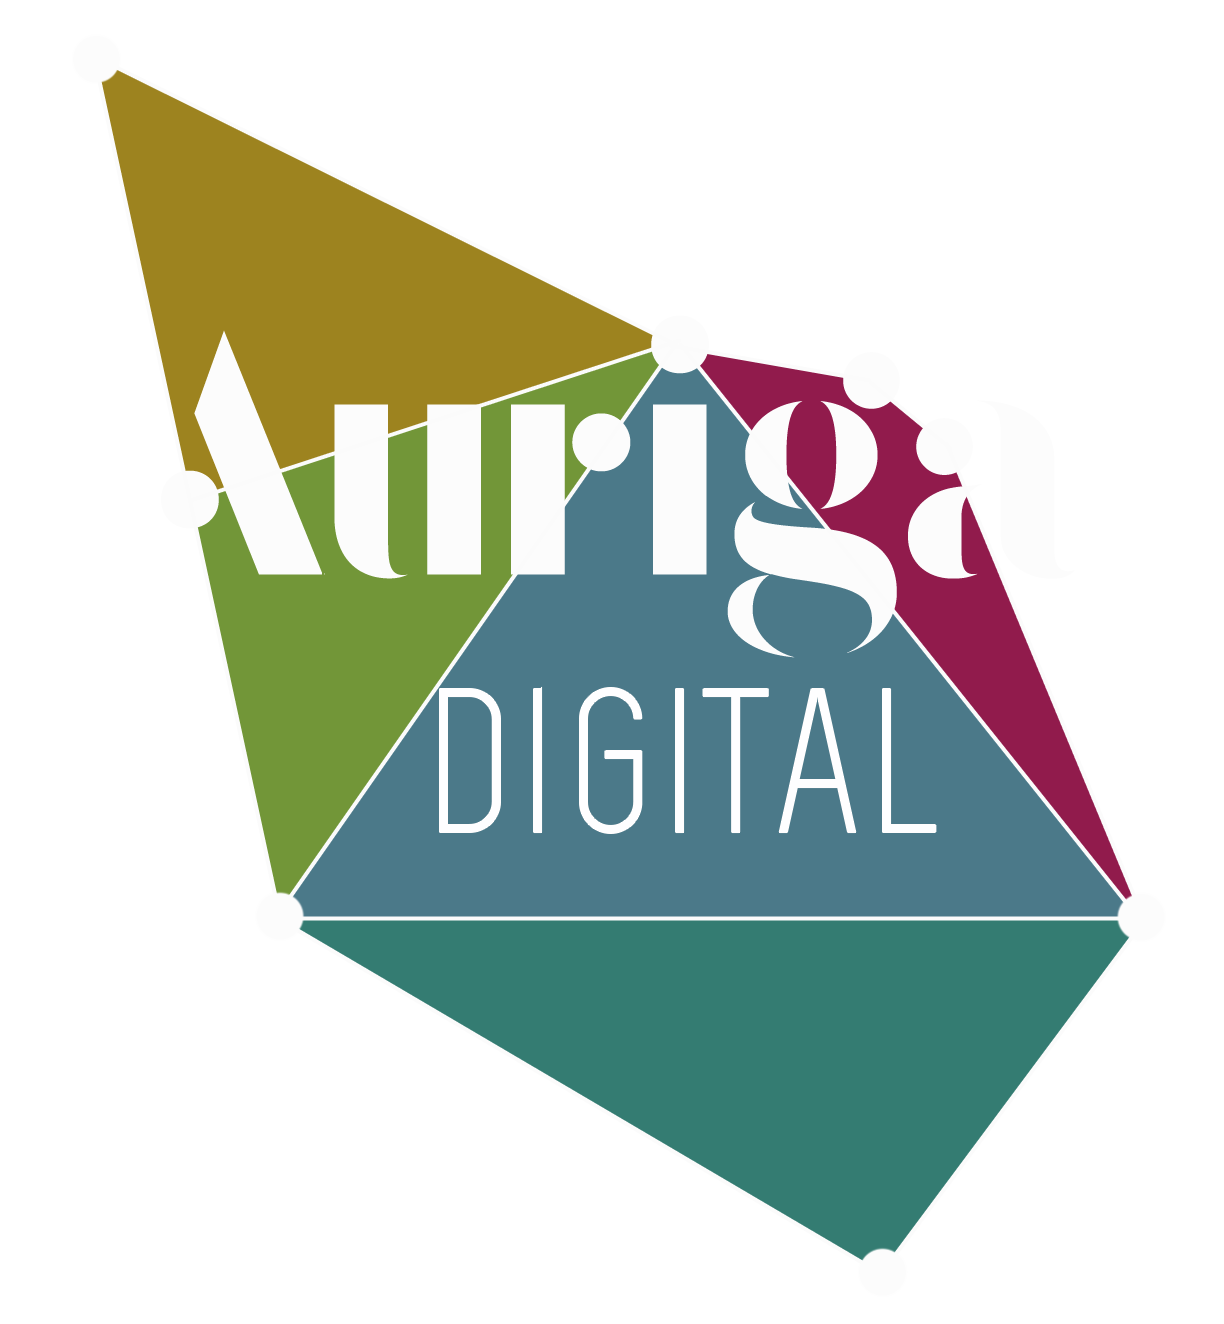 Auriga Digital